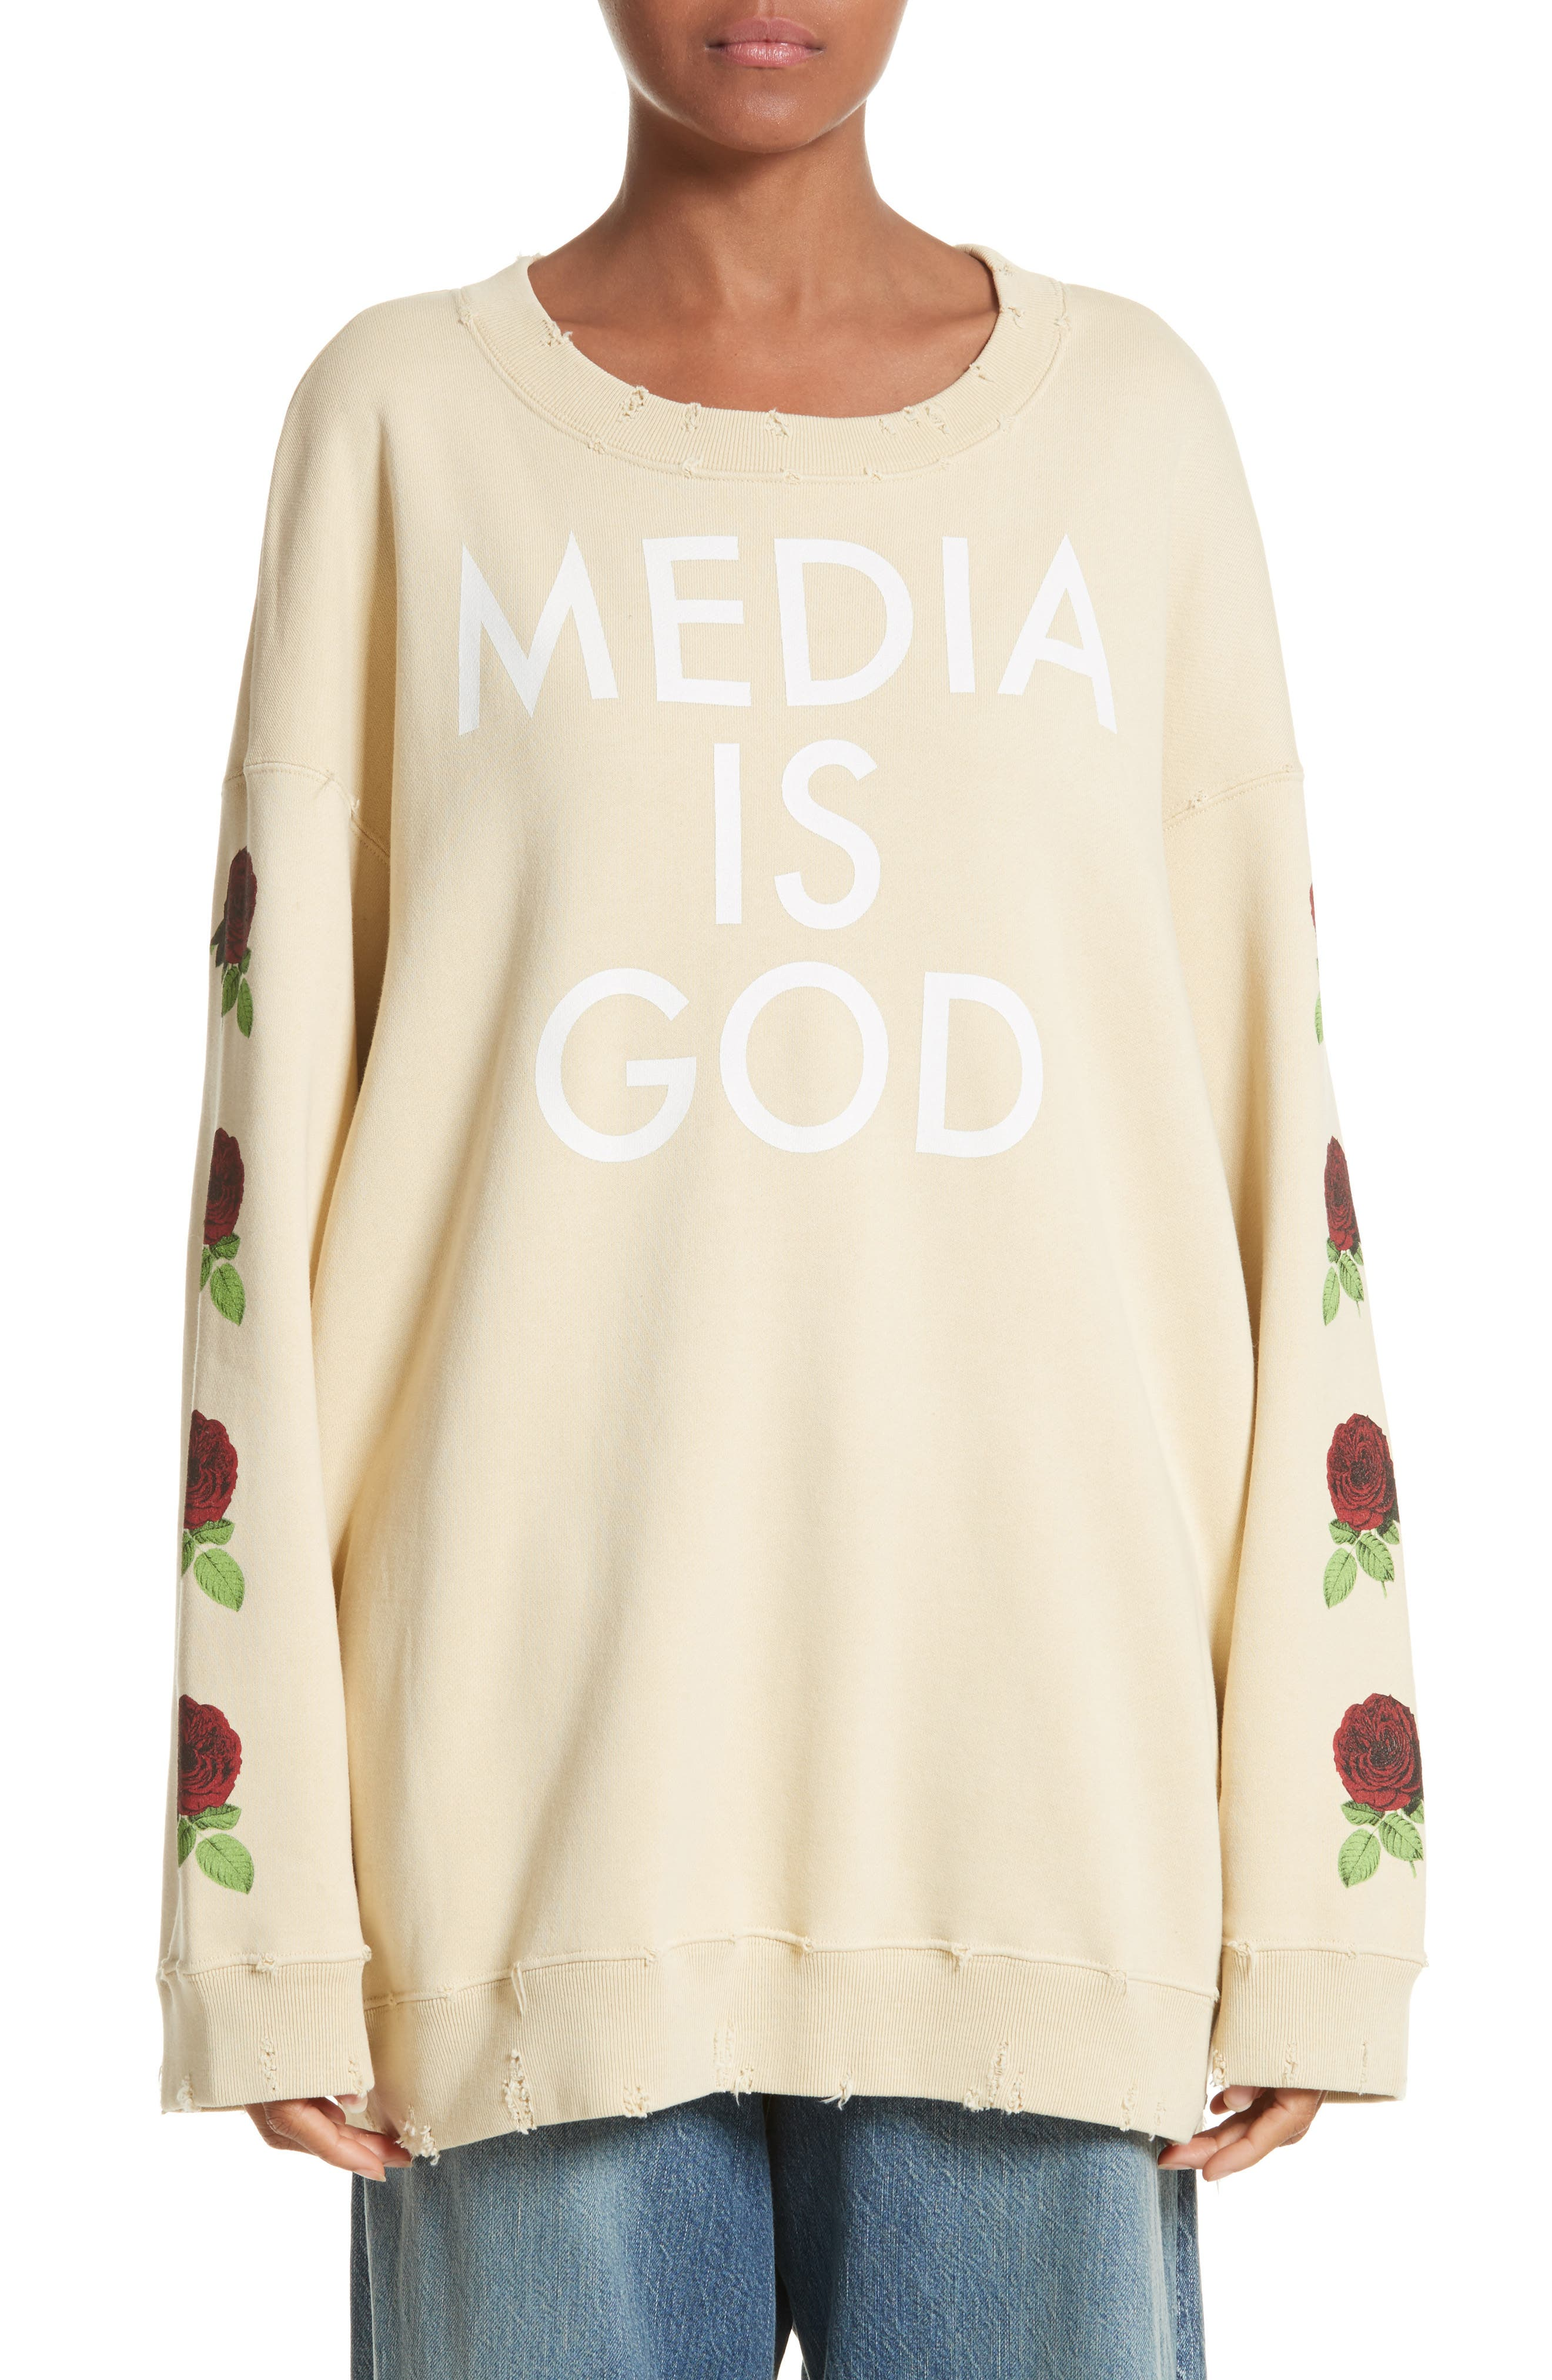 Media Is God Sweatshirt,                         Main,                         color, Cream